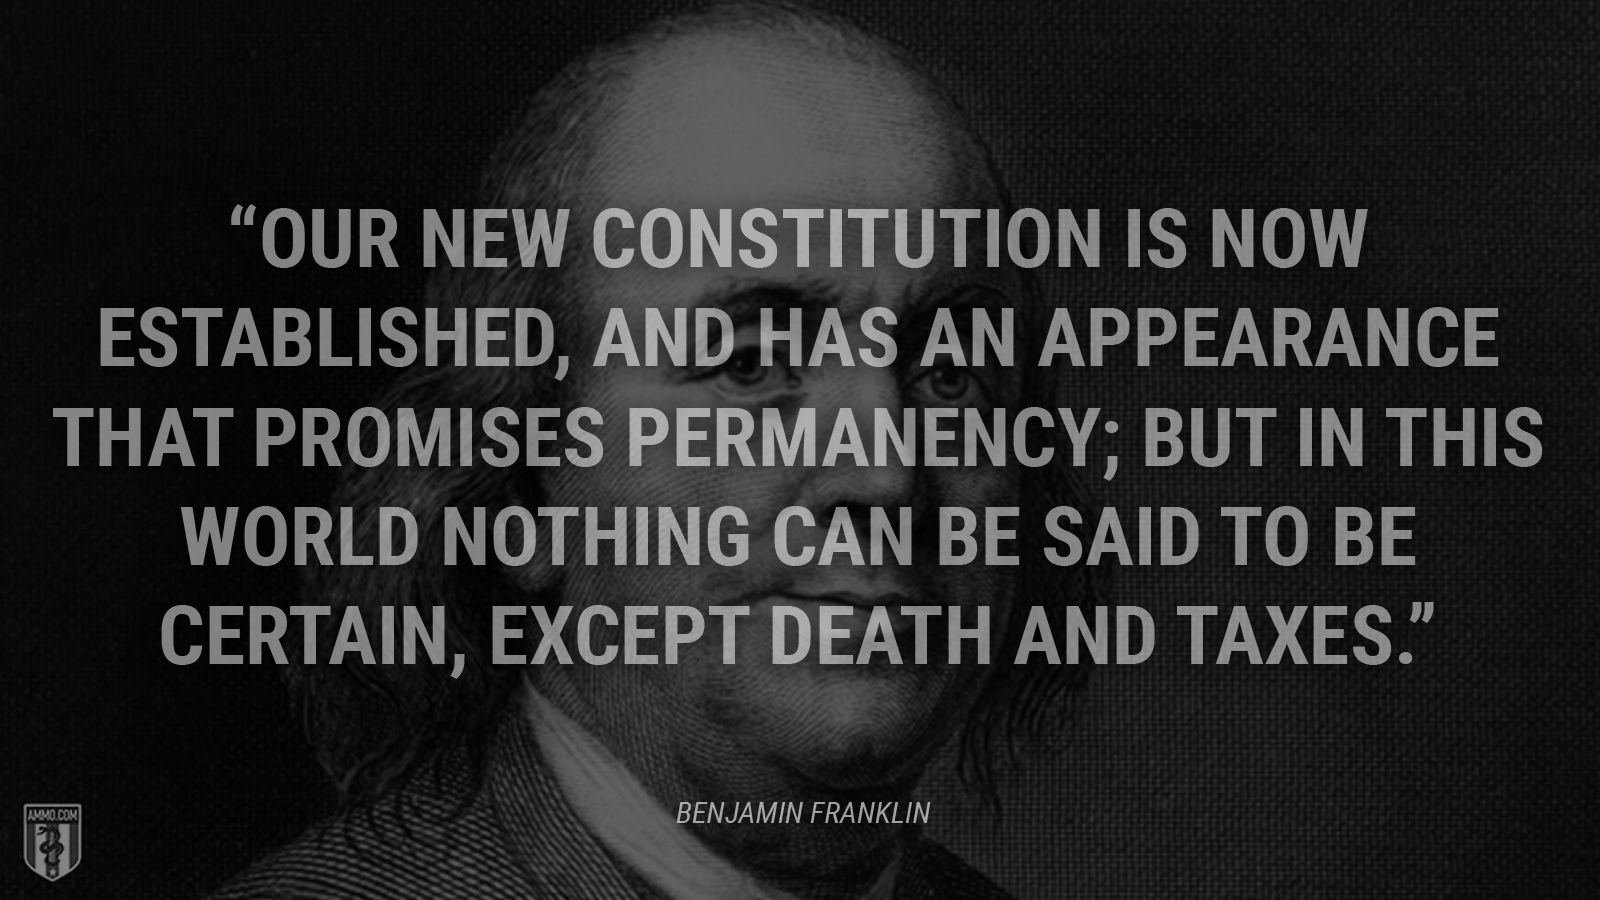 """Our new Constitution is now established, and has an appearance that promises permanency; but in this world nothing can be said to be certain, except death and taxes."" - Ben Franklin"